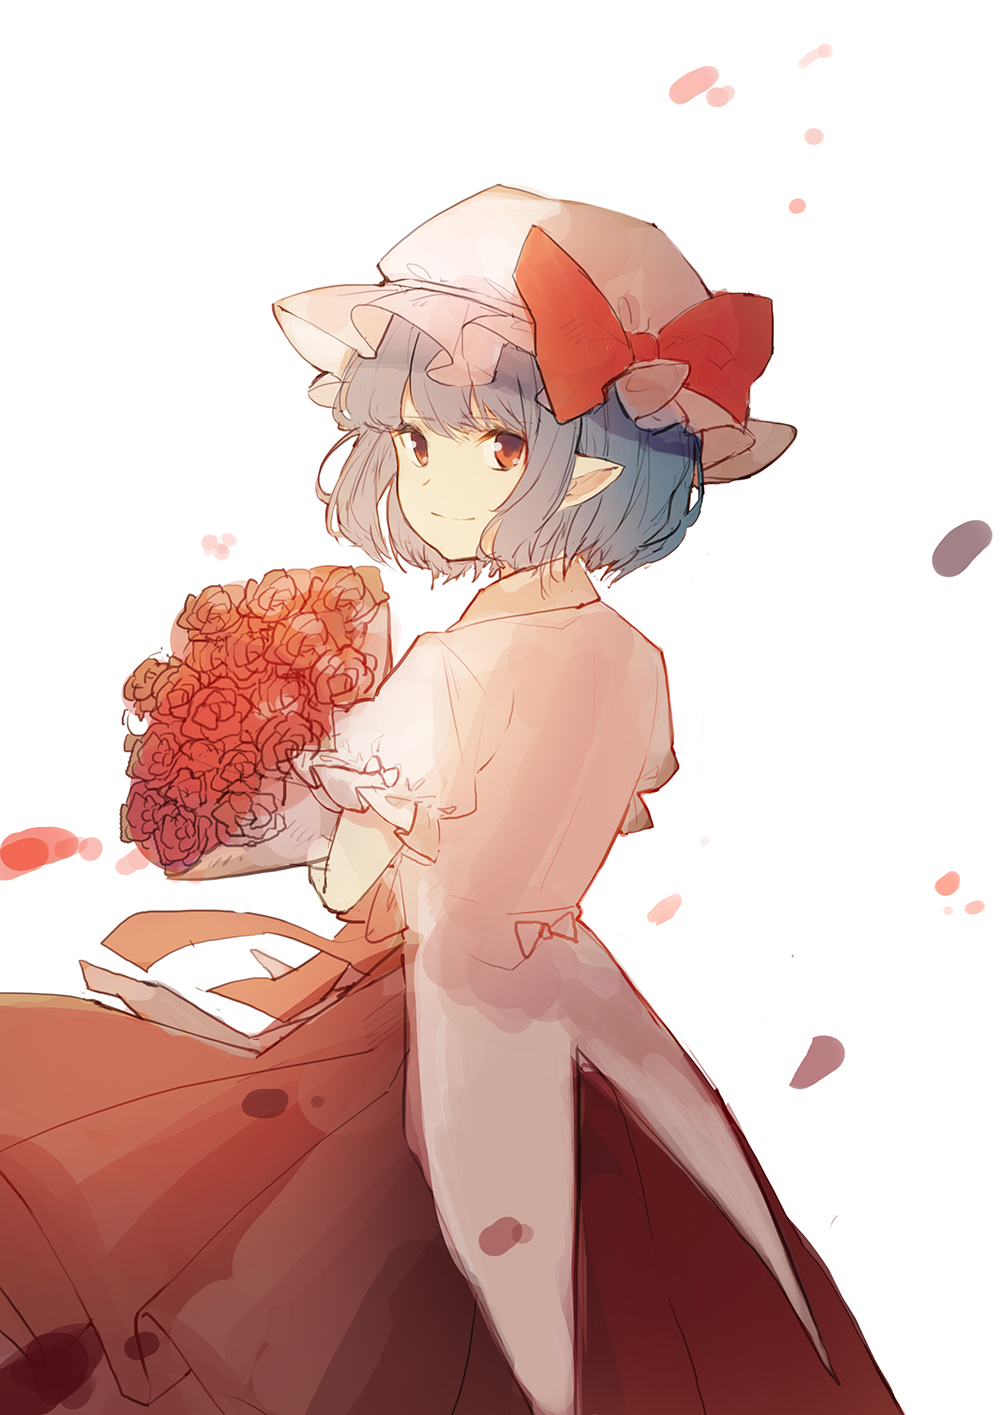 1girl bangs blue_hair bouquet bow closed_mouth collared_shirt cowboy_shot dress dress_shirt eyebrows_visible_through_hair flower from_behind ginryuu hat hat_bow highres holding holding_bouquet looking_at_viewer looking_back mob_cap petals pointy_ears puffy_short_sleeves puffy_sleeves red_bow red_dress red_eyes red_flower red_rose remilia_scarlet rose shirt short_hair short_sleeves simple_background skirt skirt_set smile solo touhou twisted_neck white_background white_shirt wind